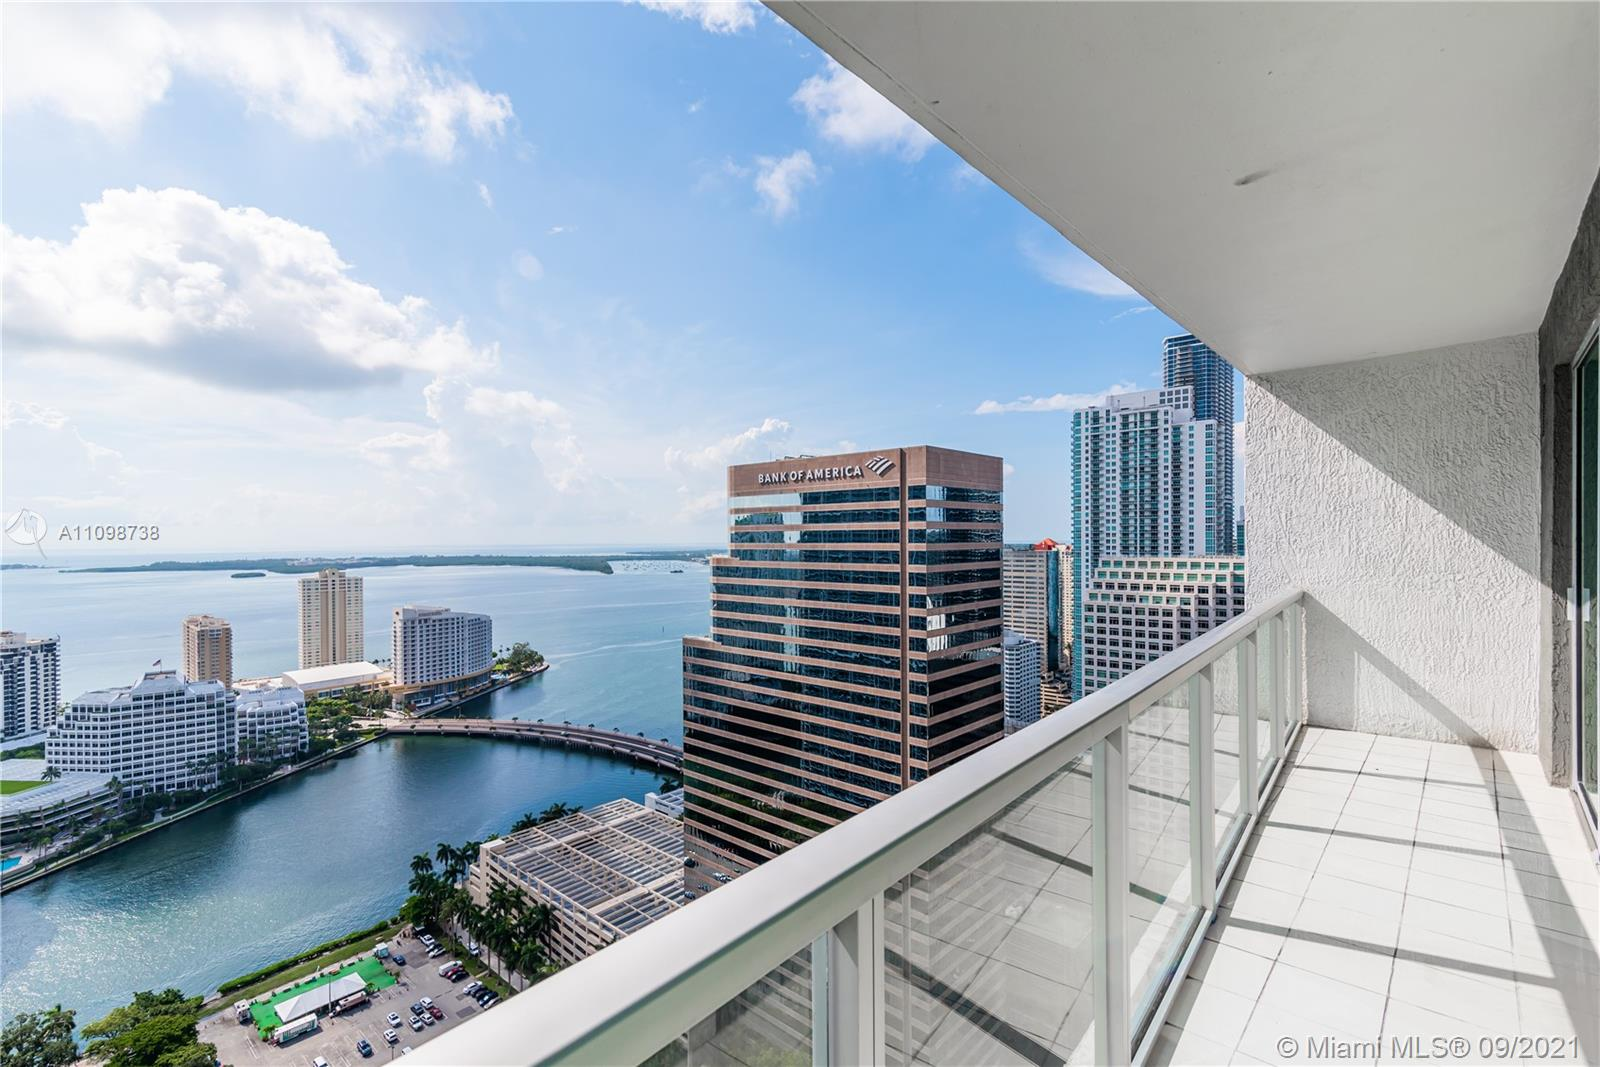 BEAUTIFUL SUB-PENTHOUSE ON THE 41 FLOORS WITH AMAZING VIEWS OF MIAMI RIVER, OCEAN AND BRICKELL CITY VIEW, WITH 3 BEDROOMS AND 3 BATHROOMS. 2 MASTER SUITE W/HUGE WALKING CLOSETS, WATER VIEWS FROM EACH ROOM AS WELL, RARE TO FIND ,WALKING DISTANCE TO ALL THE RESTAURANT AND MALL BRICKELL CITY CENTER, VERY BRIGHT UNIT. ITALIAN KITCHEN, GRANITE COUNTER TOP. TOP OF THE LINE APPLIANCES.ACCESS TO THE ROOF TOP OF THE BUILDING.NEW FRIDGE, NEW BLACKOUT SYSTEM, NEW AC, NEW WASHER & DRYER, NEW BACKSPLASH NEED TO SEE IT....CALL NOW....